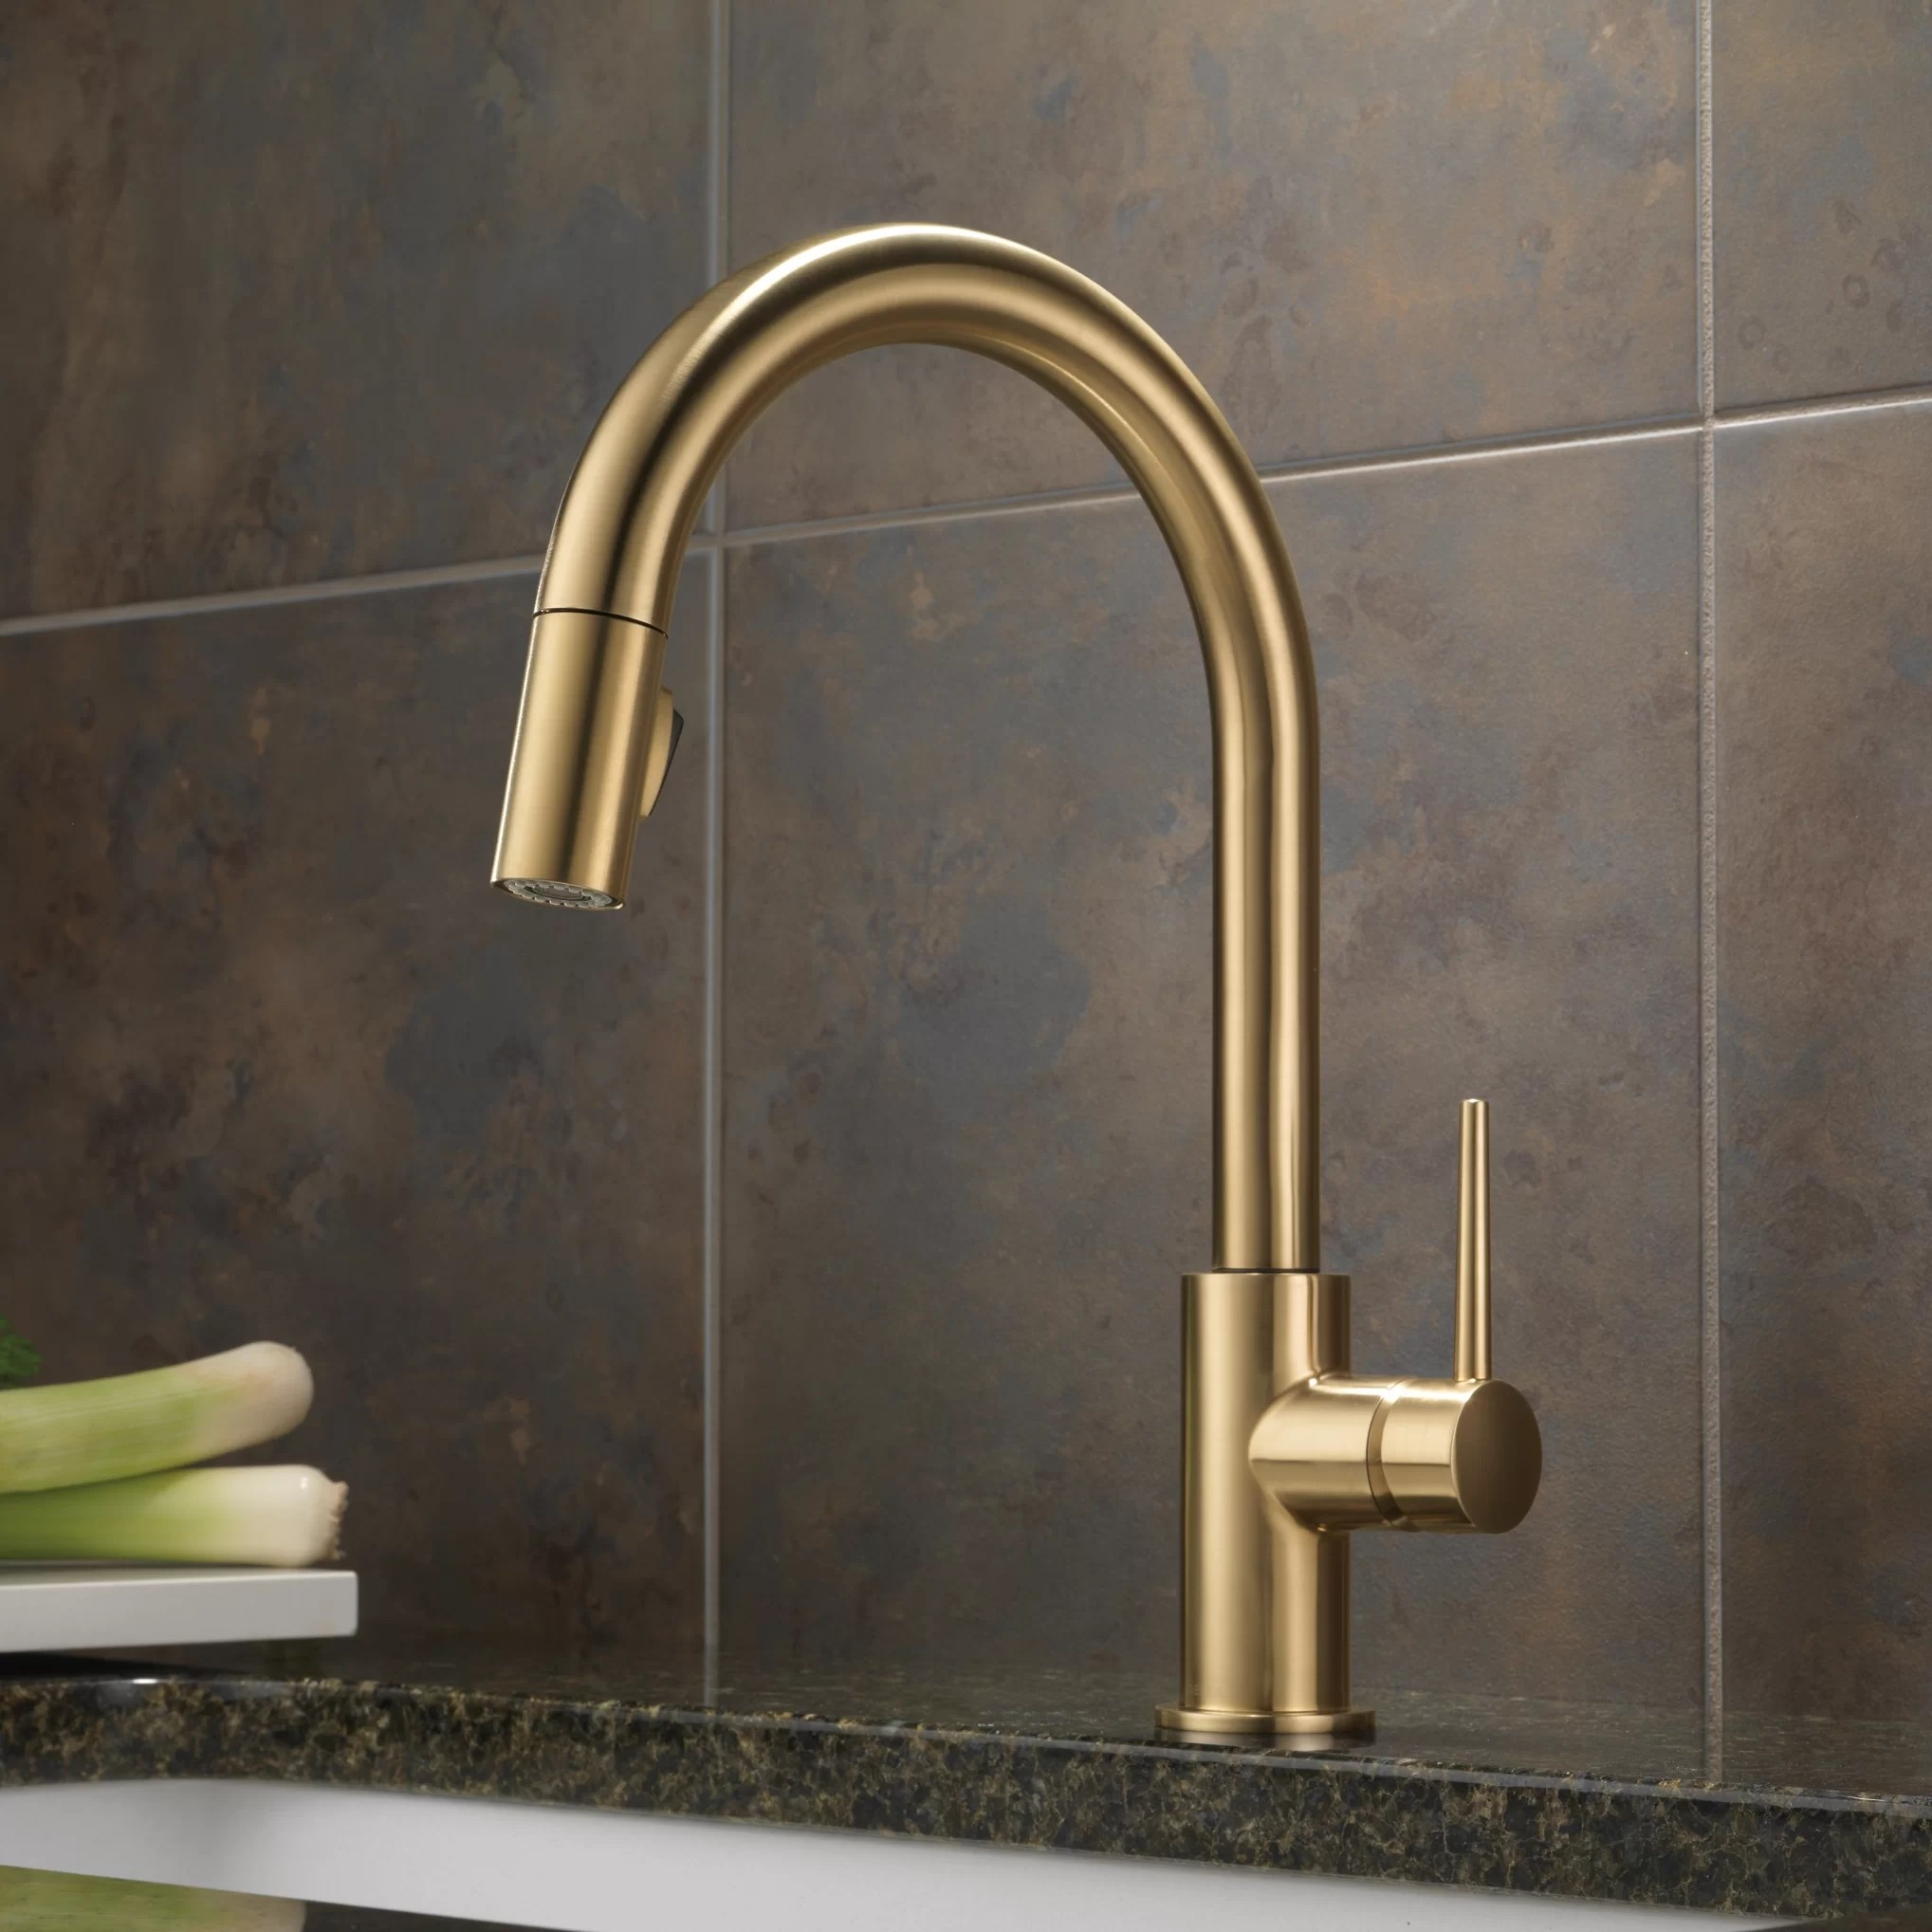 delta trinsic kitchen faucet floor lino single handle deck mounted